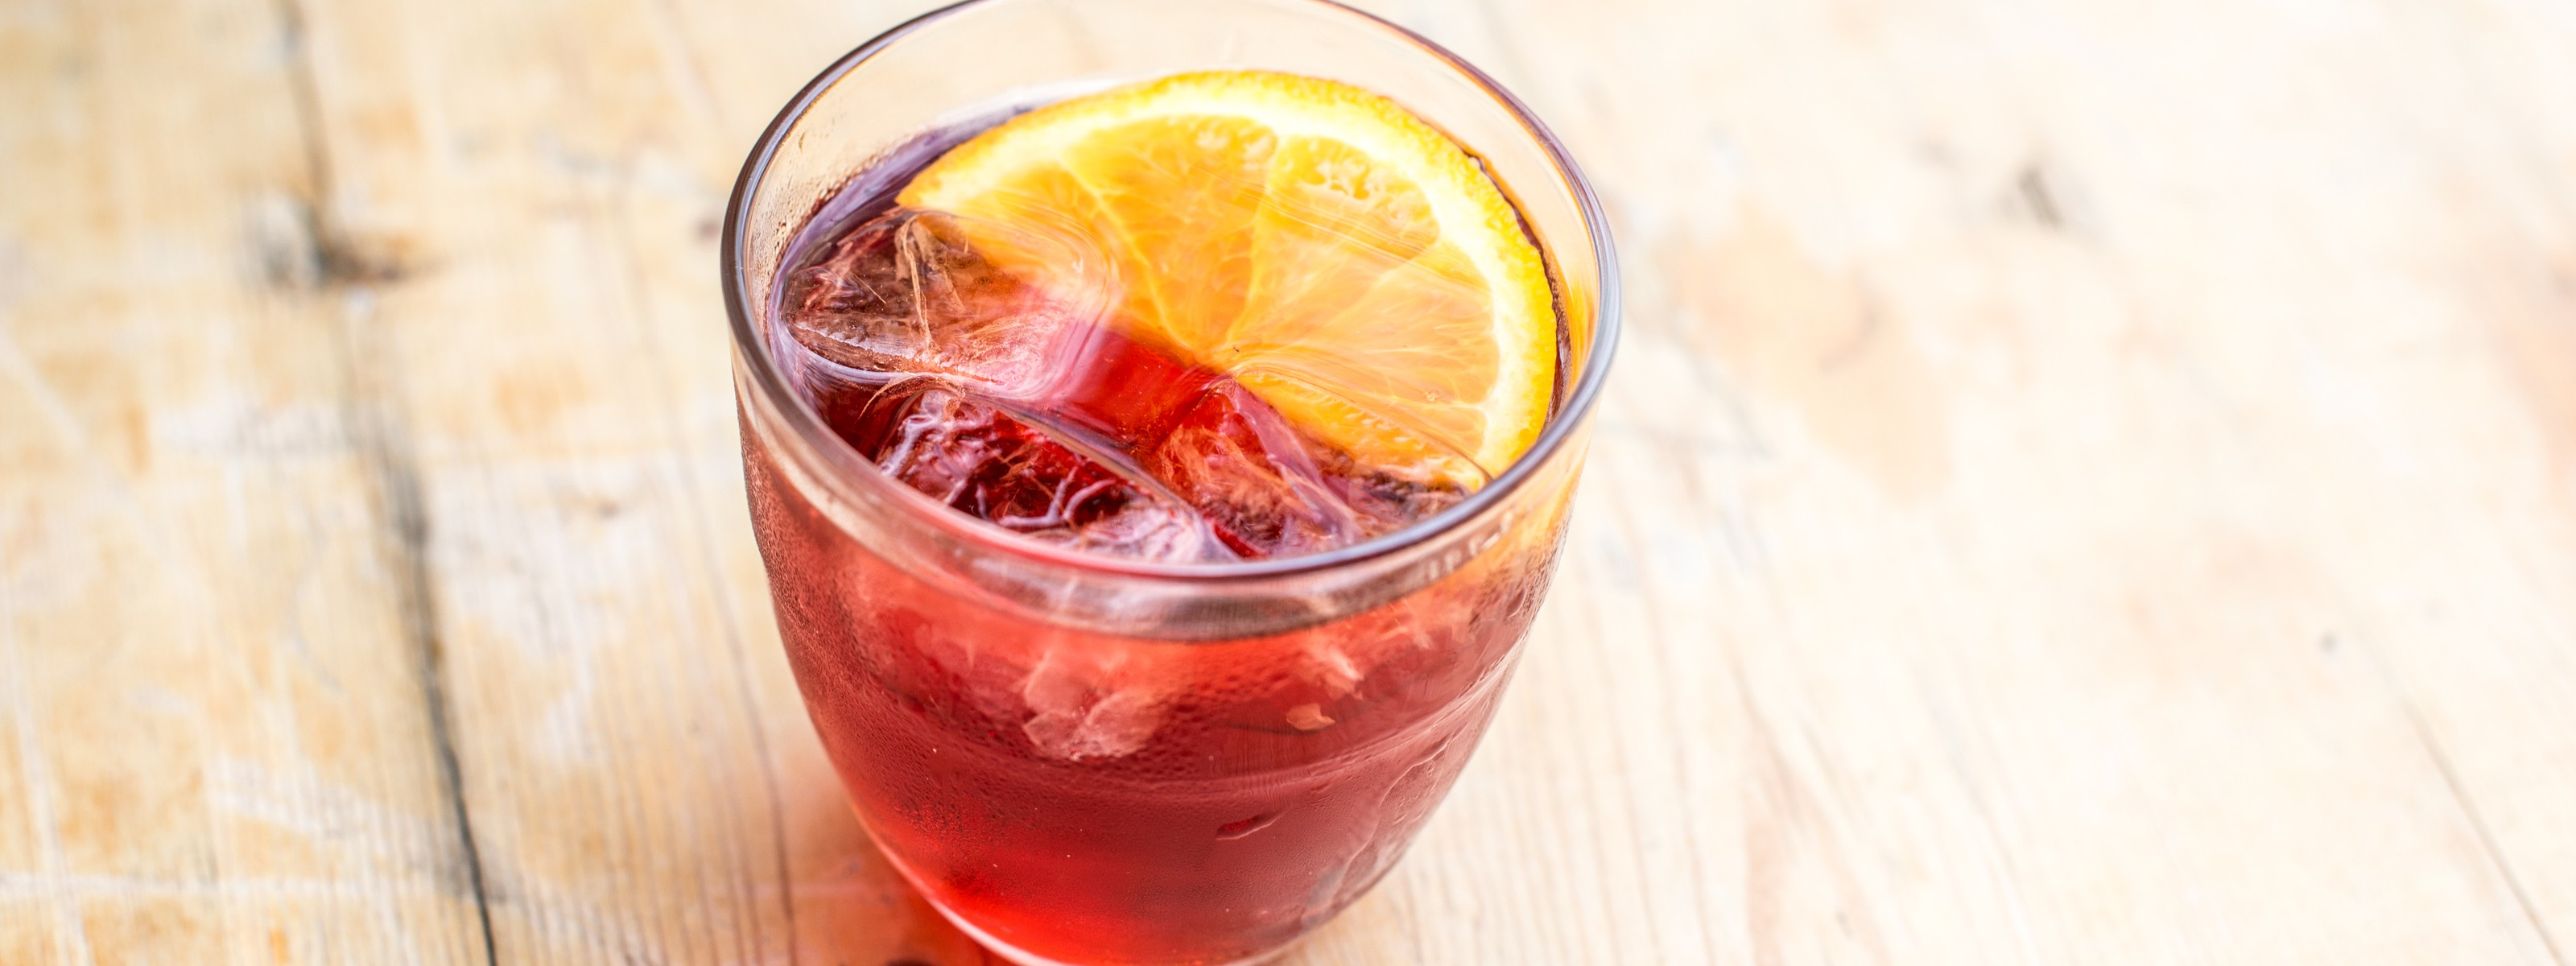 How To Make A Negroni - The Infatuation